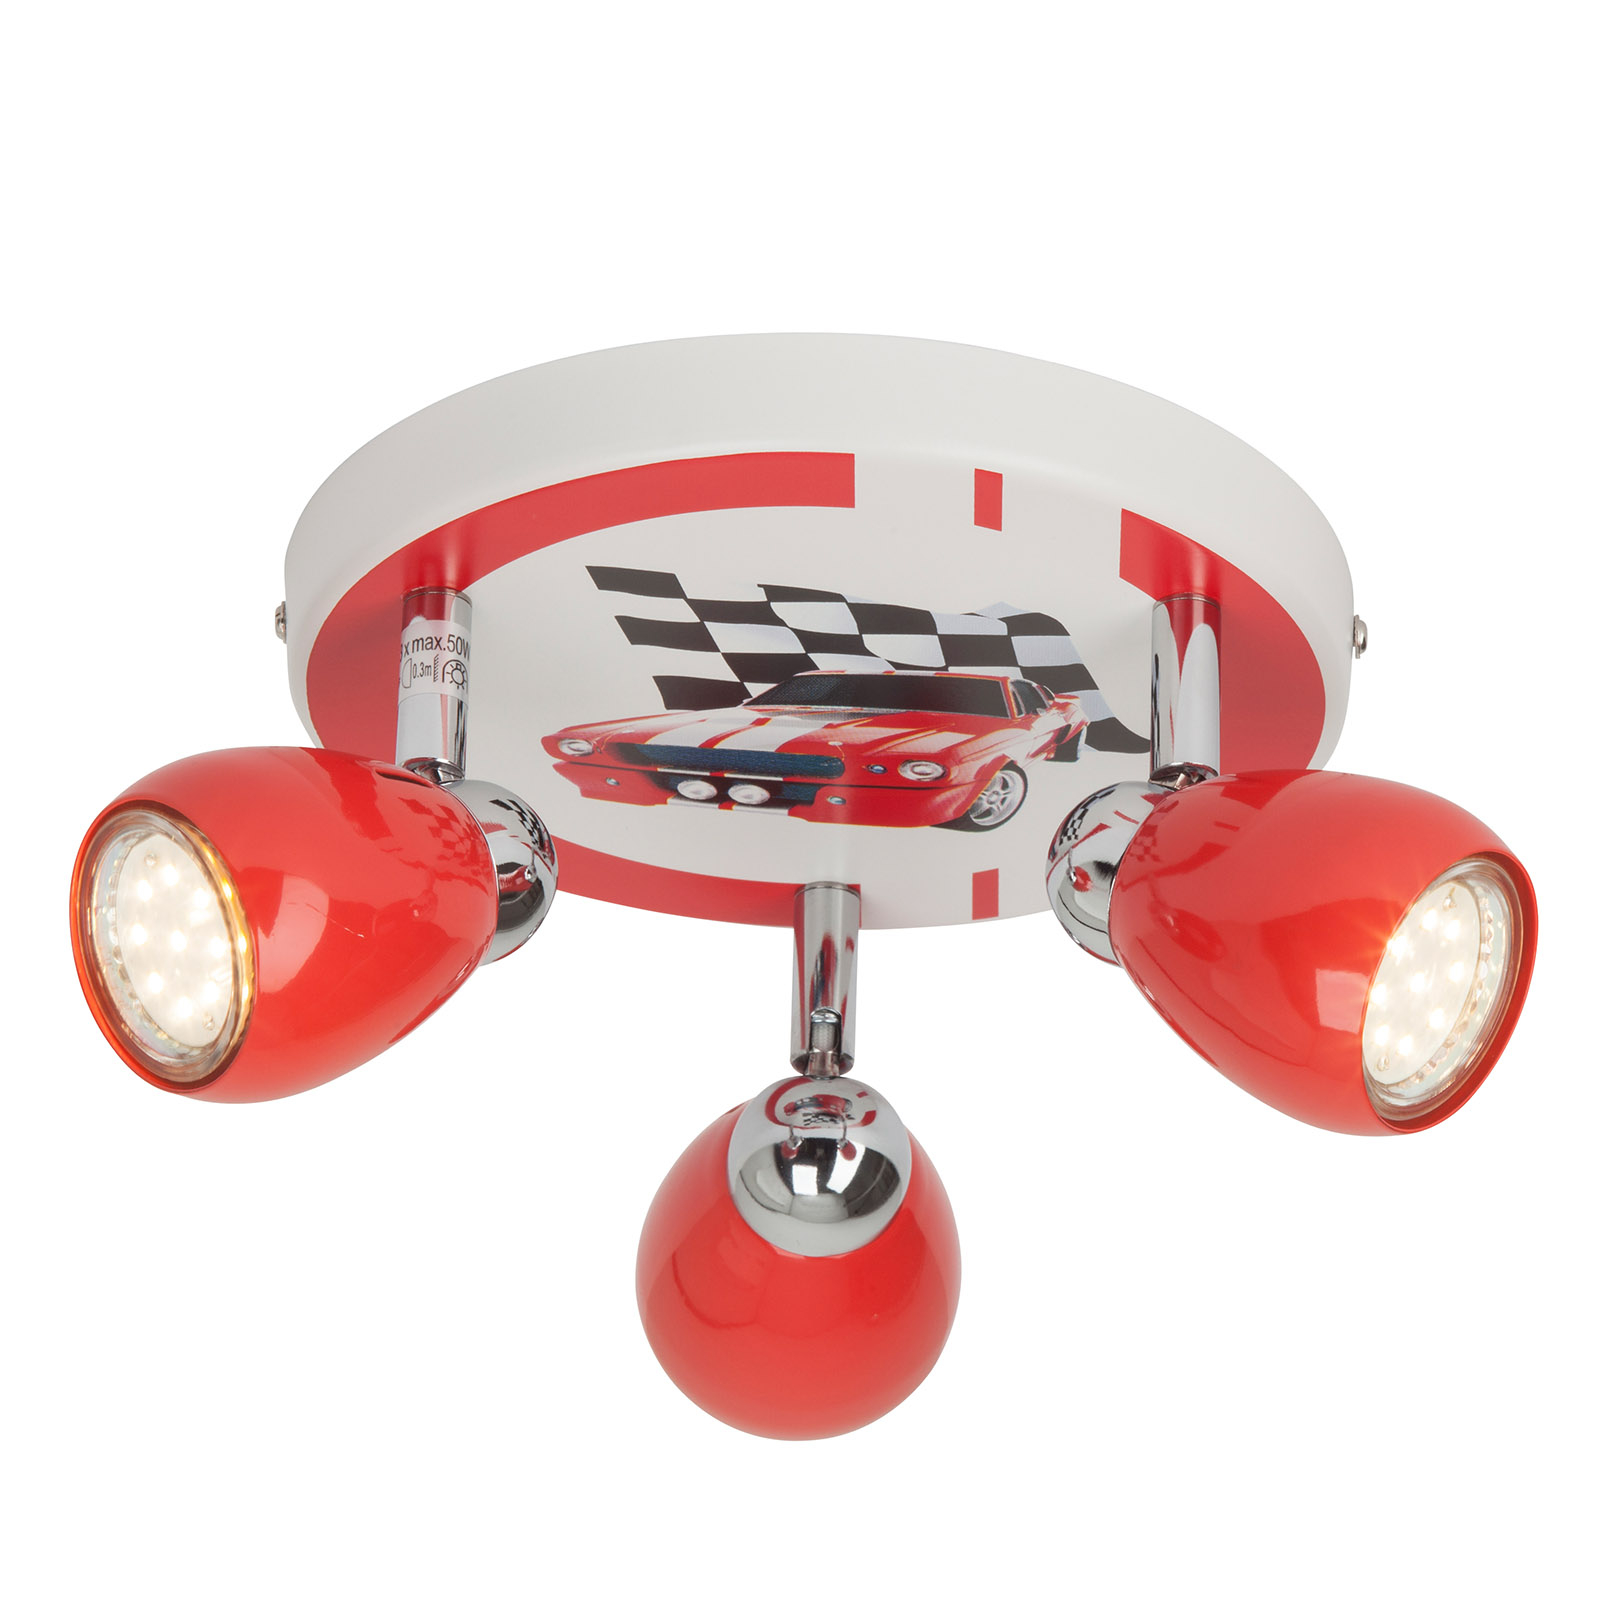 Racing LED ceiling light, 3-bulb_1507232_1